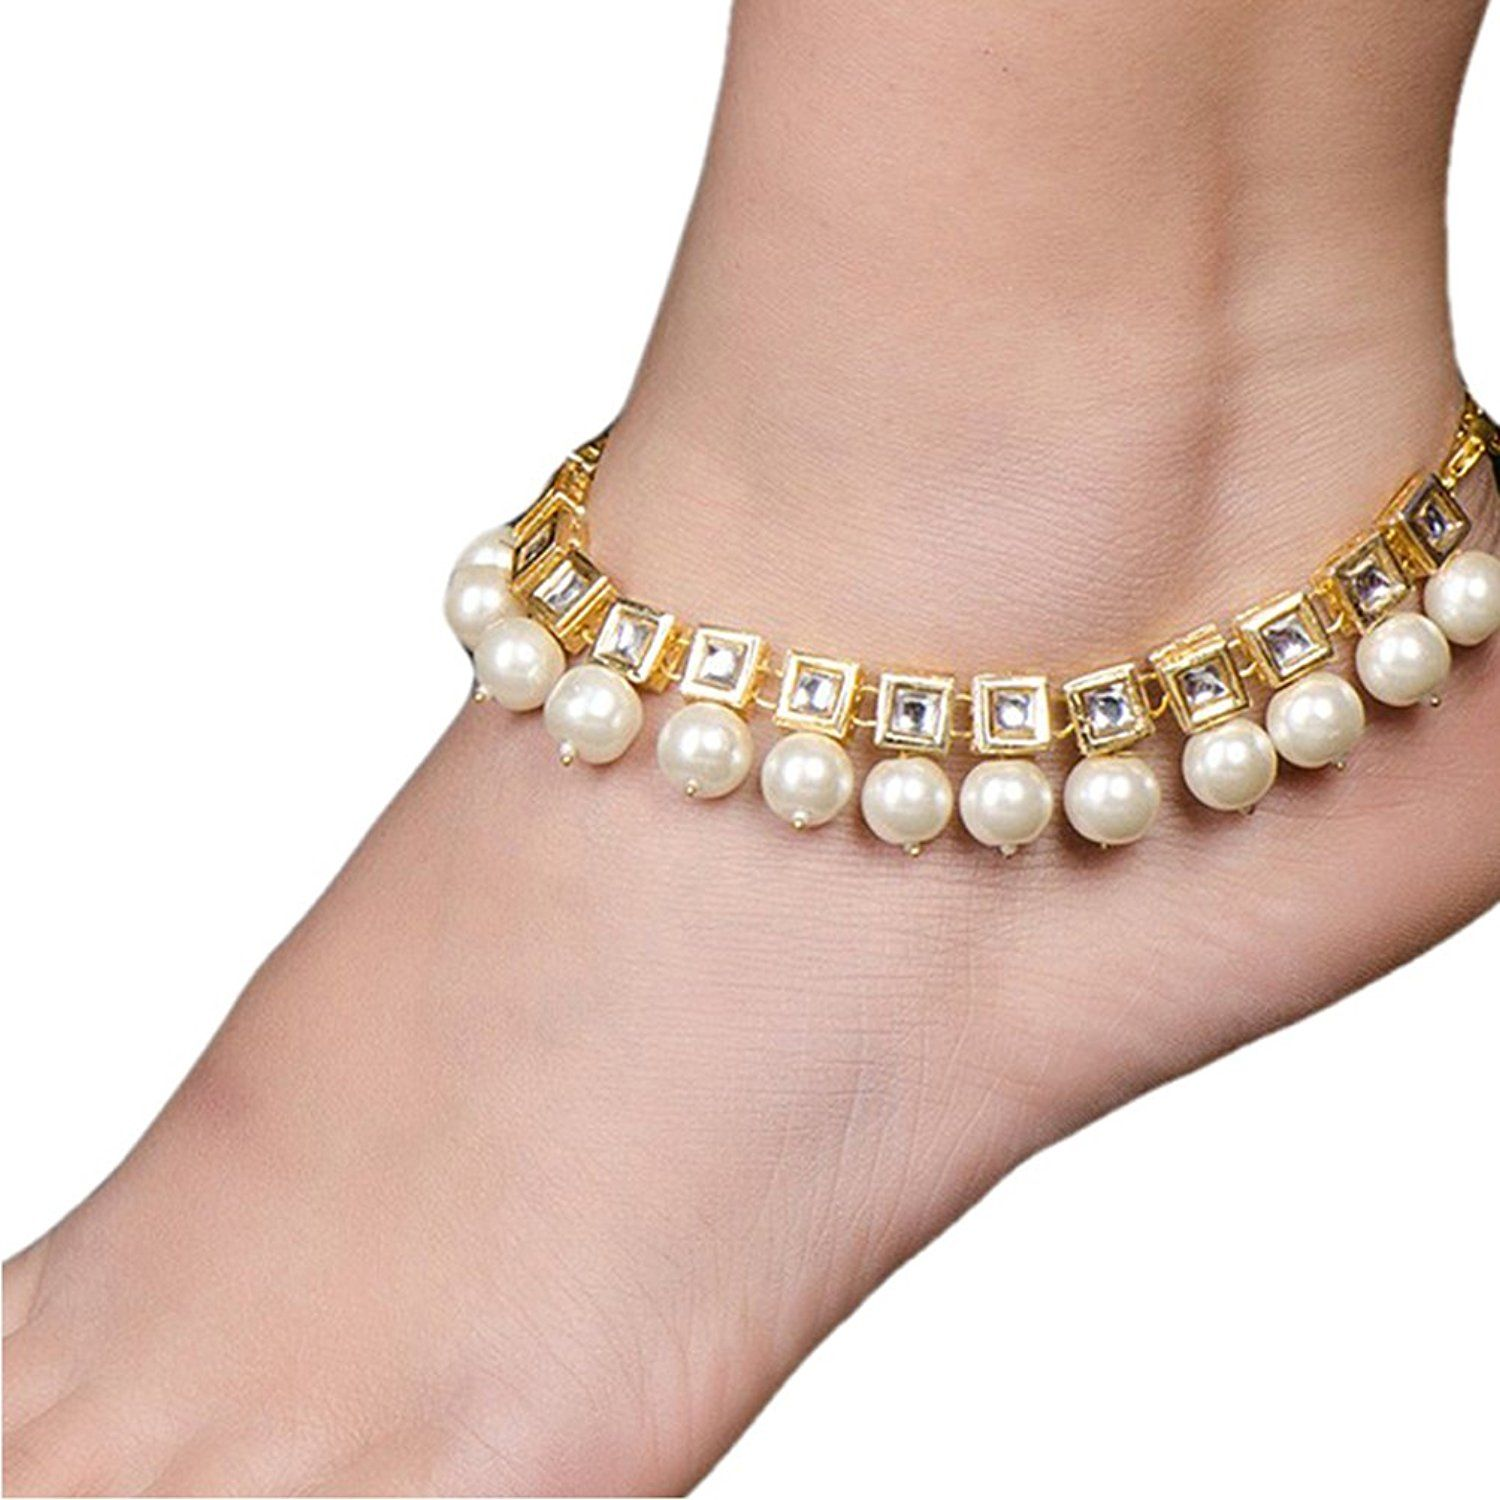 hippie il barefoot jewelry mandala anklet listing wedding zoom lesi foot sandals fullxfull flower